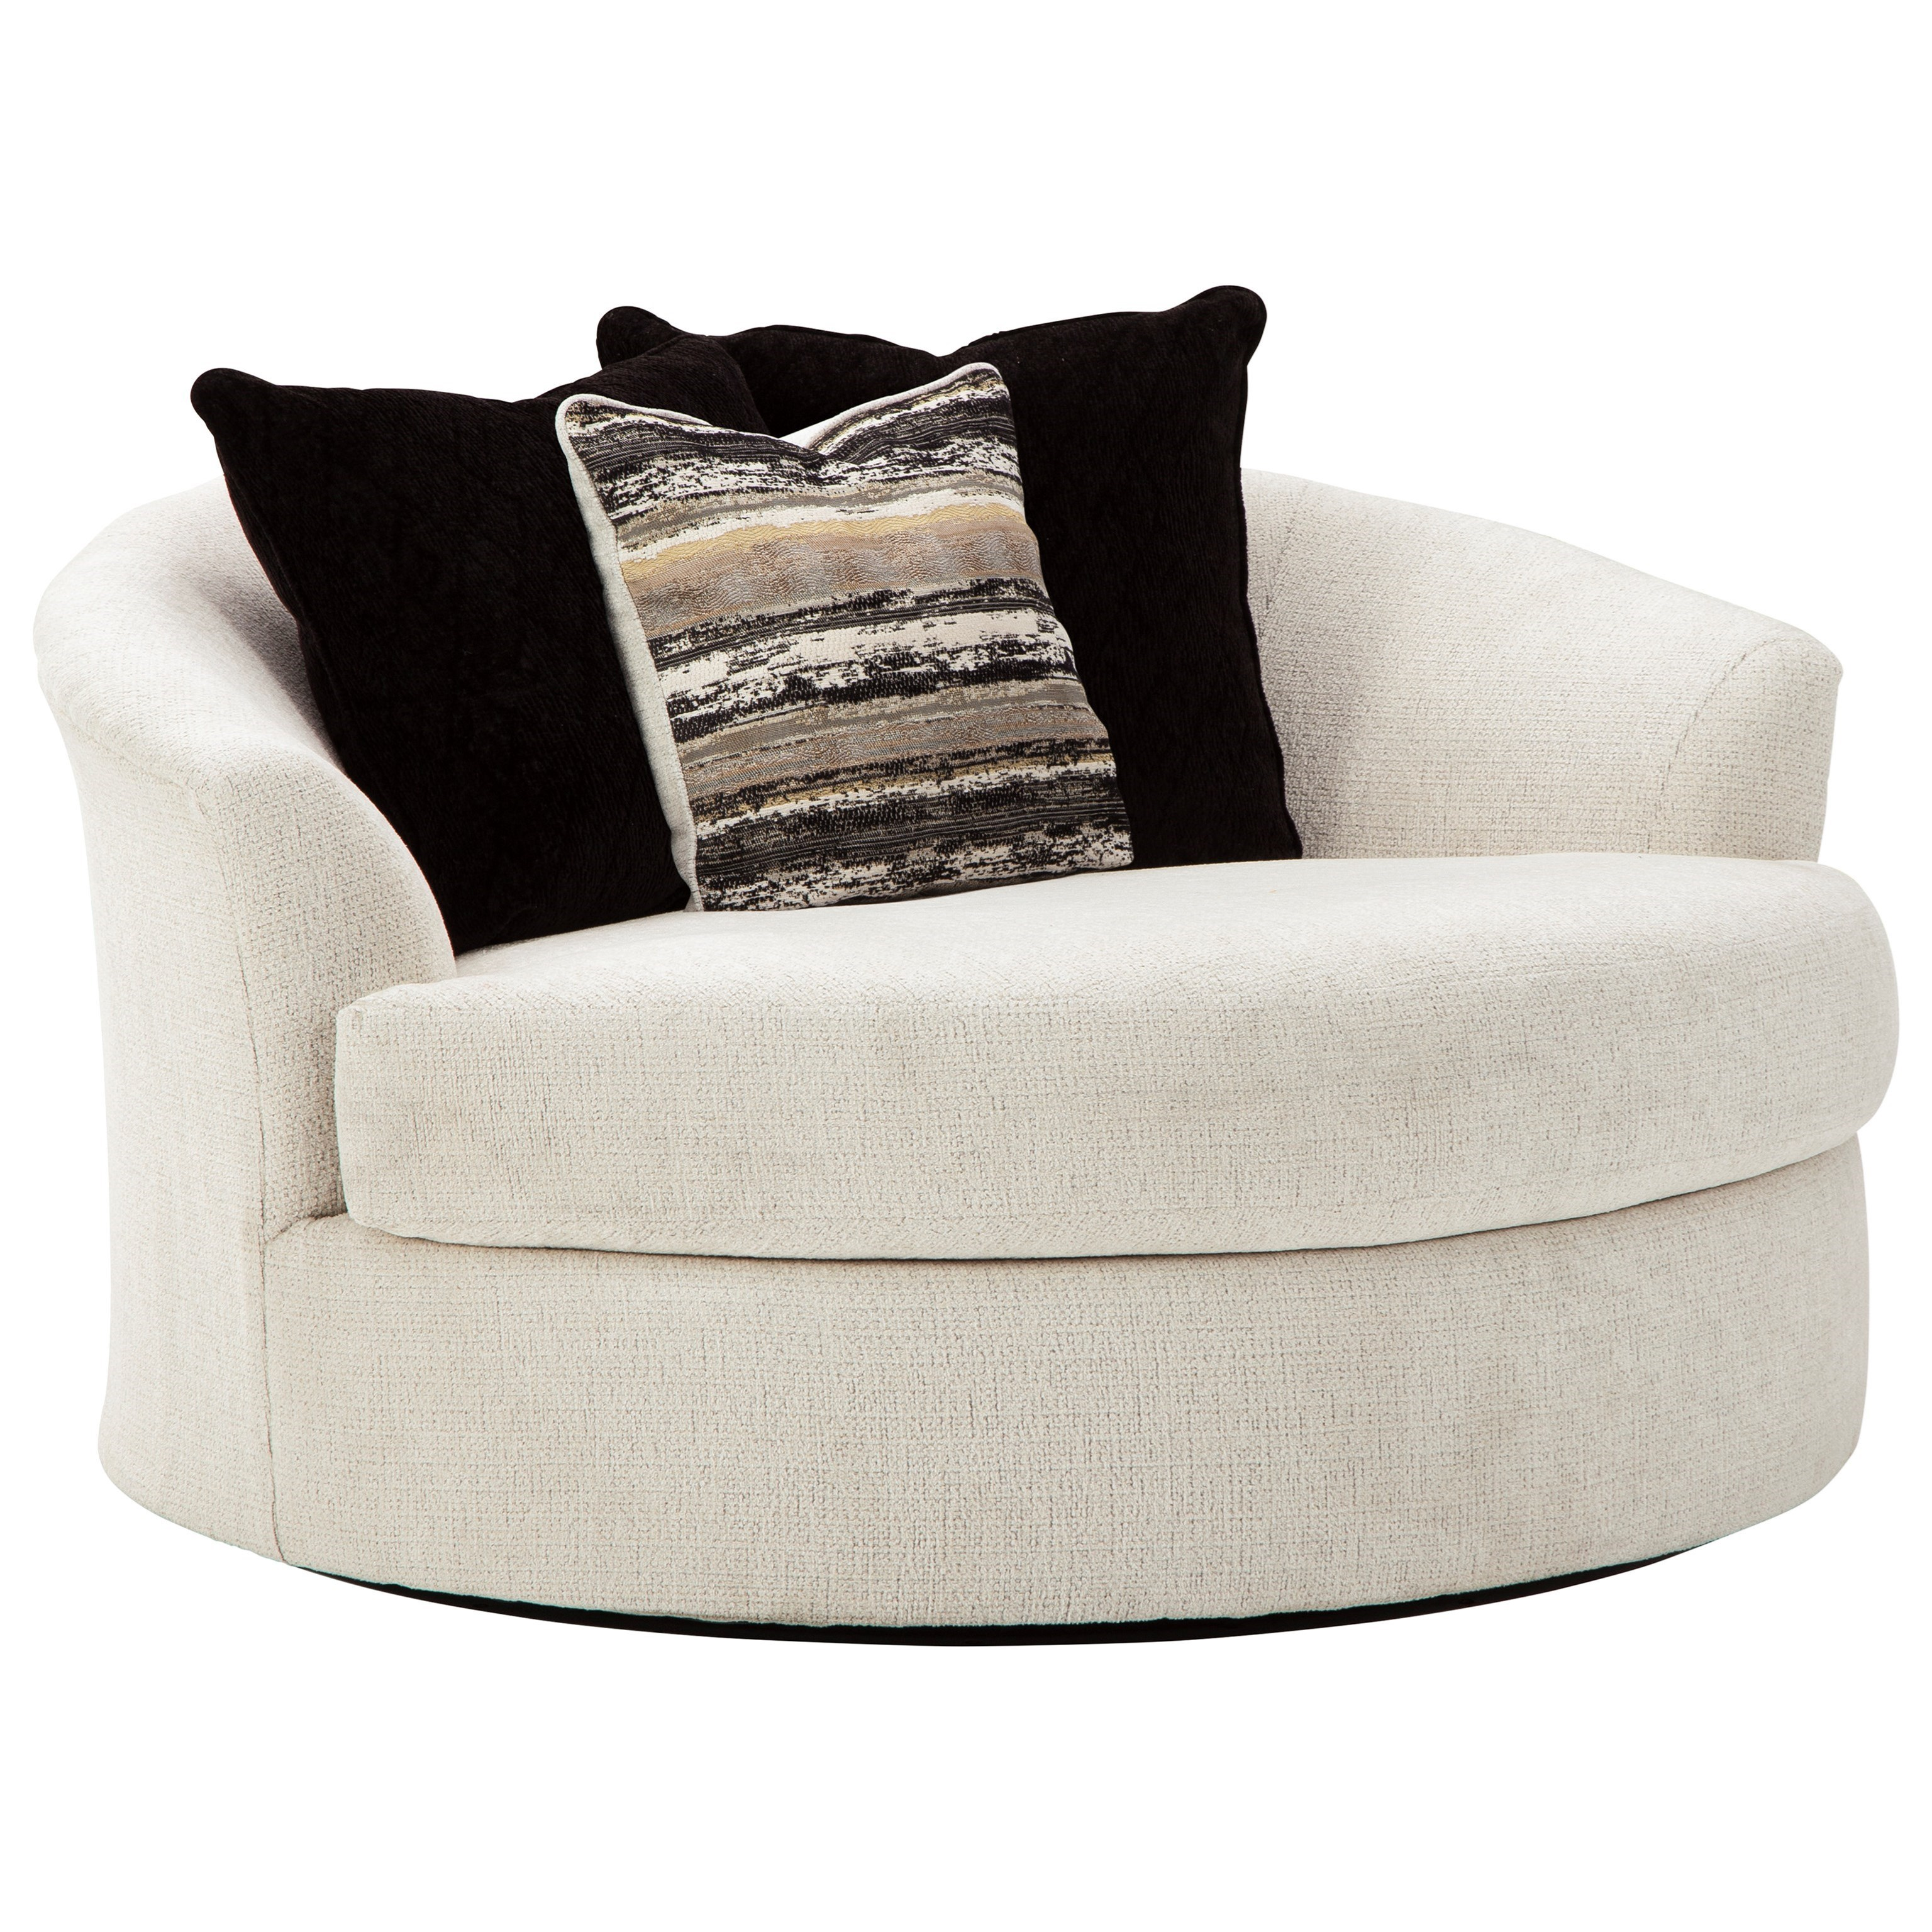 Cambri Oversized Round Swivel Chair at Walker's Furniture